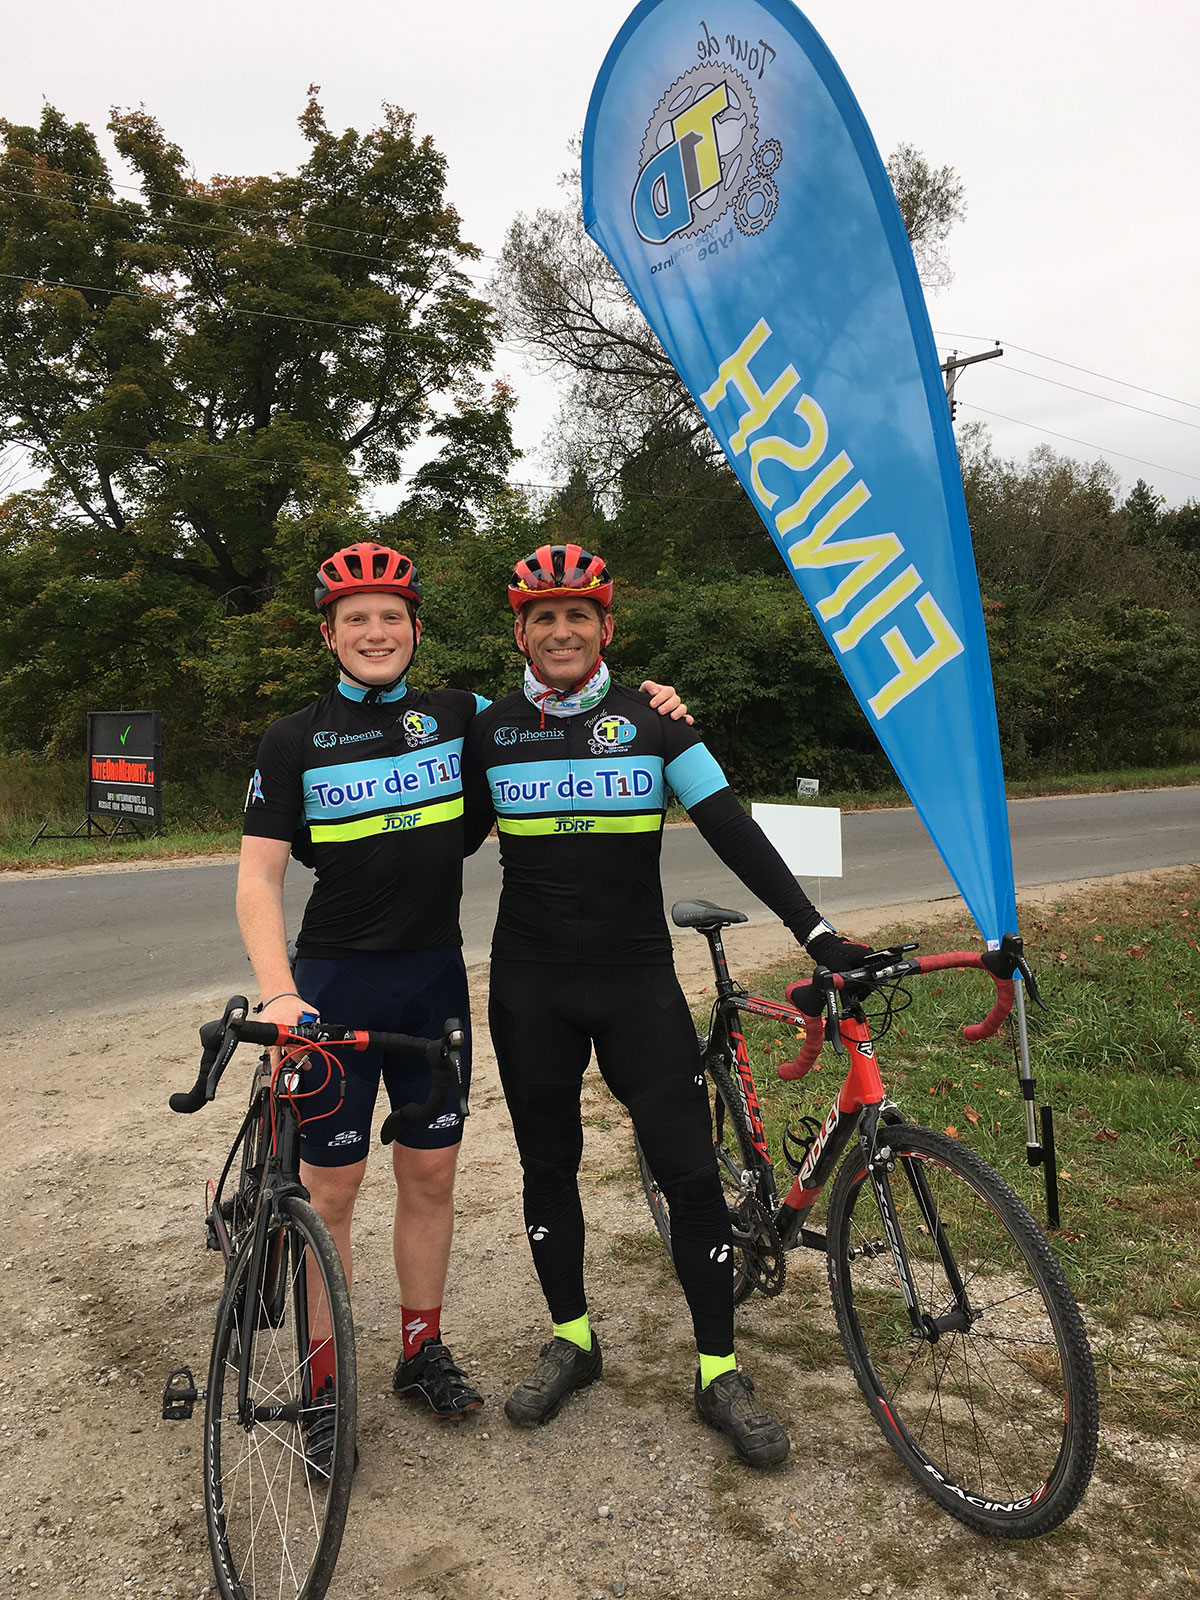 Tour de T1D - Cycling for Type 1 Diabetes